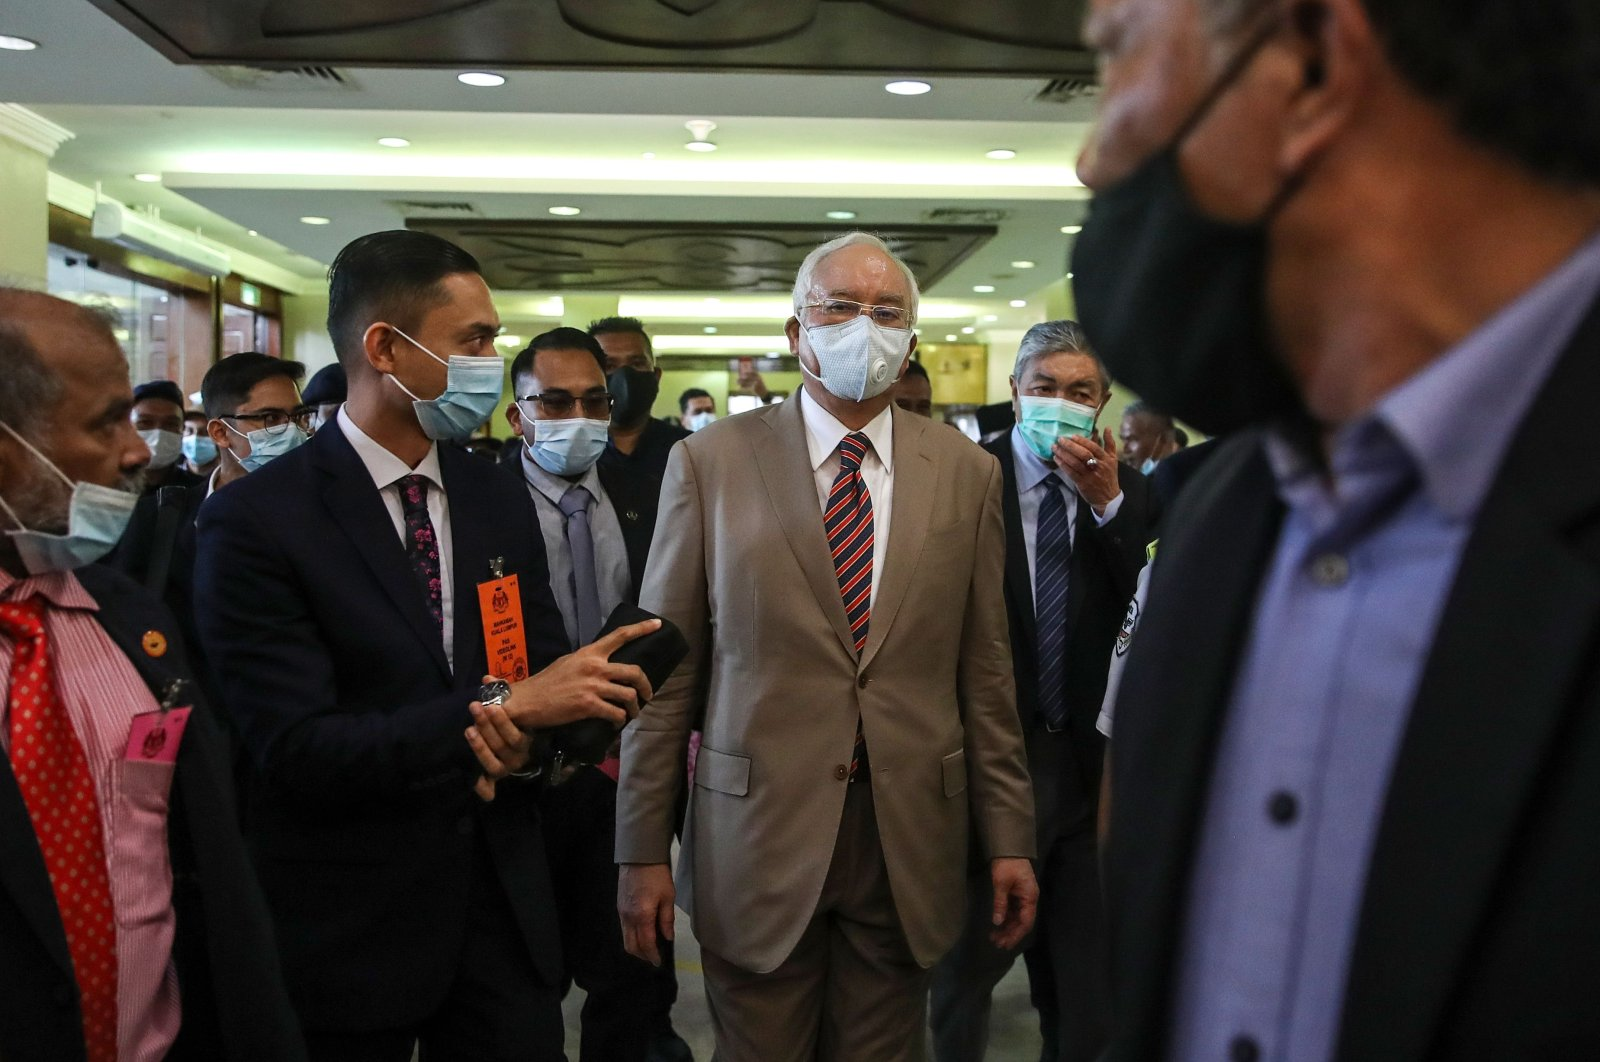 Malaysia's former Prime Minister Najib Razak (C) arrives at the Kuala Lumpur High Court complex for the verdict in his corruption trial in Kuala Lumpur on July 28, 2020. (AFP Photo)